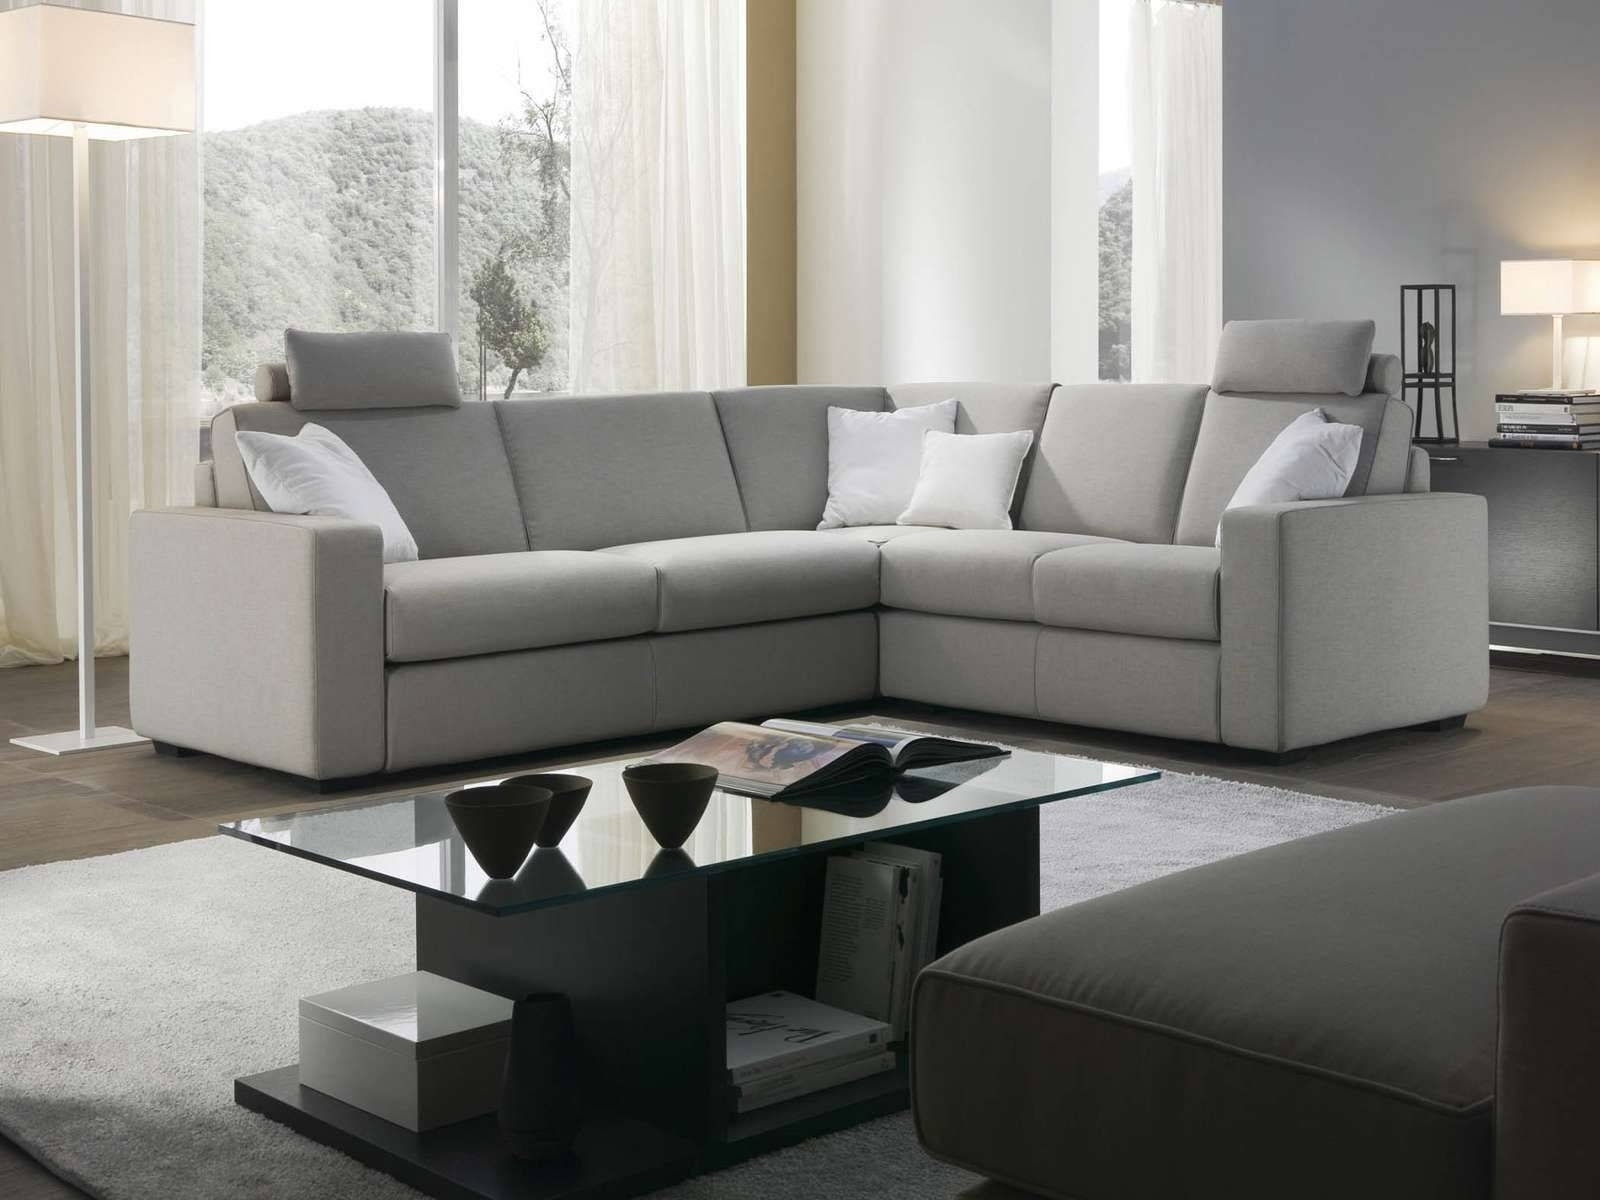 Chateau Dax Furniture Reviews: Top 15 Of Divani Chateau D'ax Leather Sofas